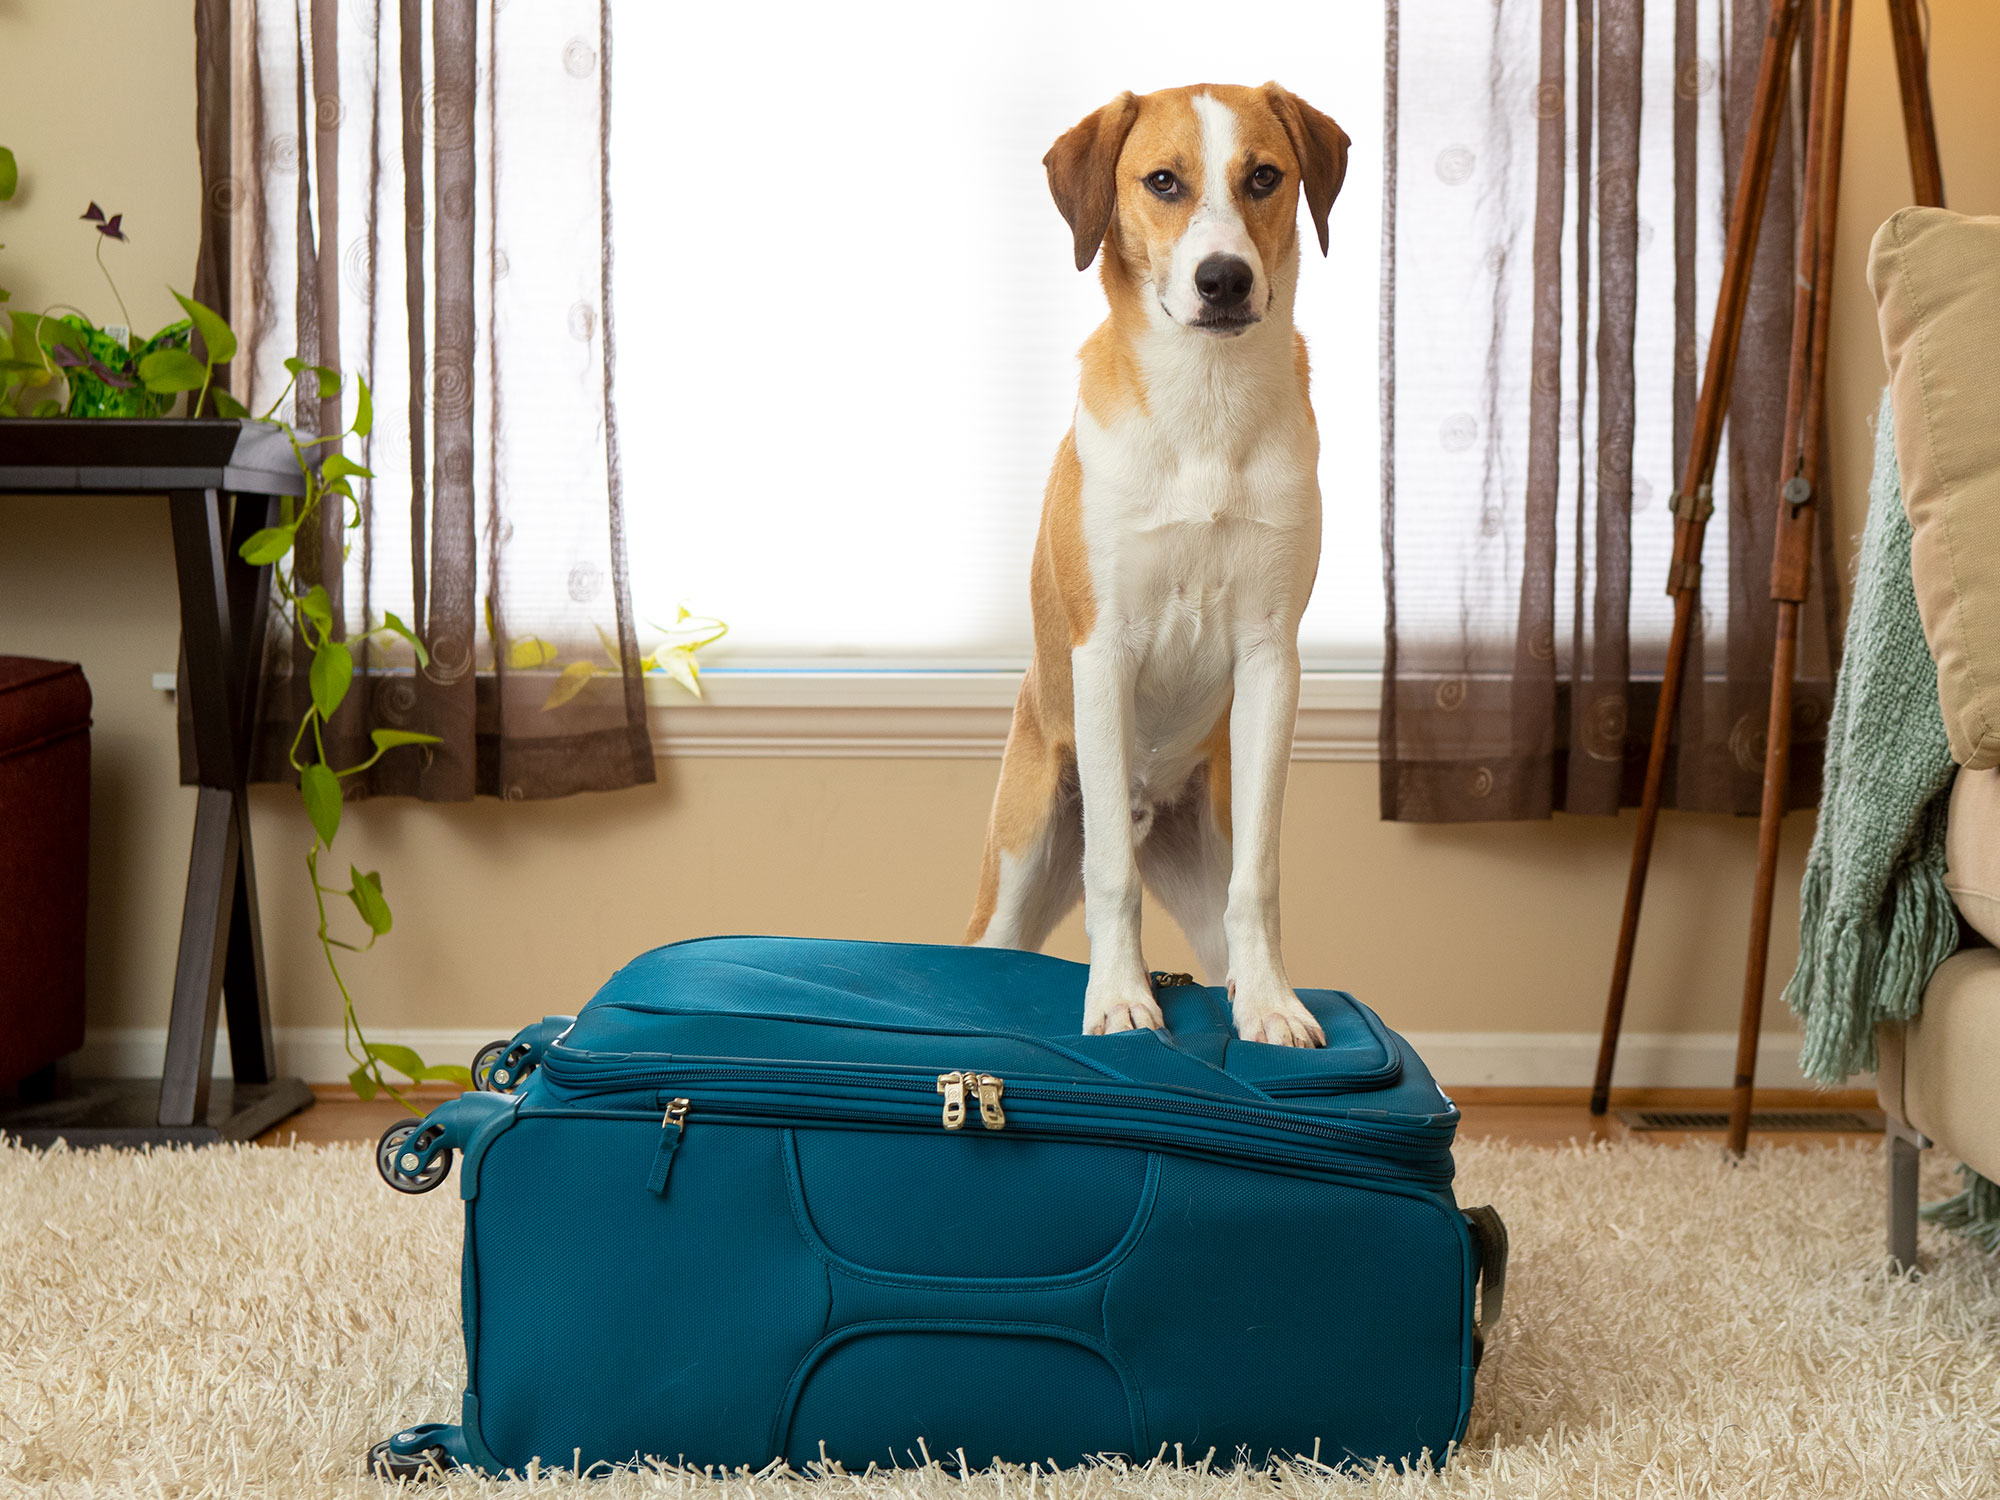 Tan and white dog standing on a blue suitcase.